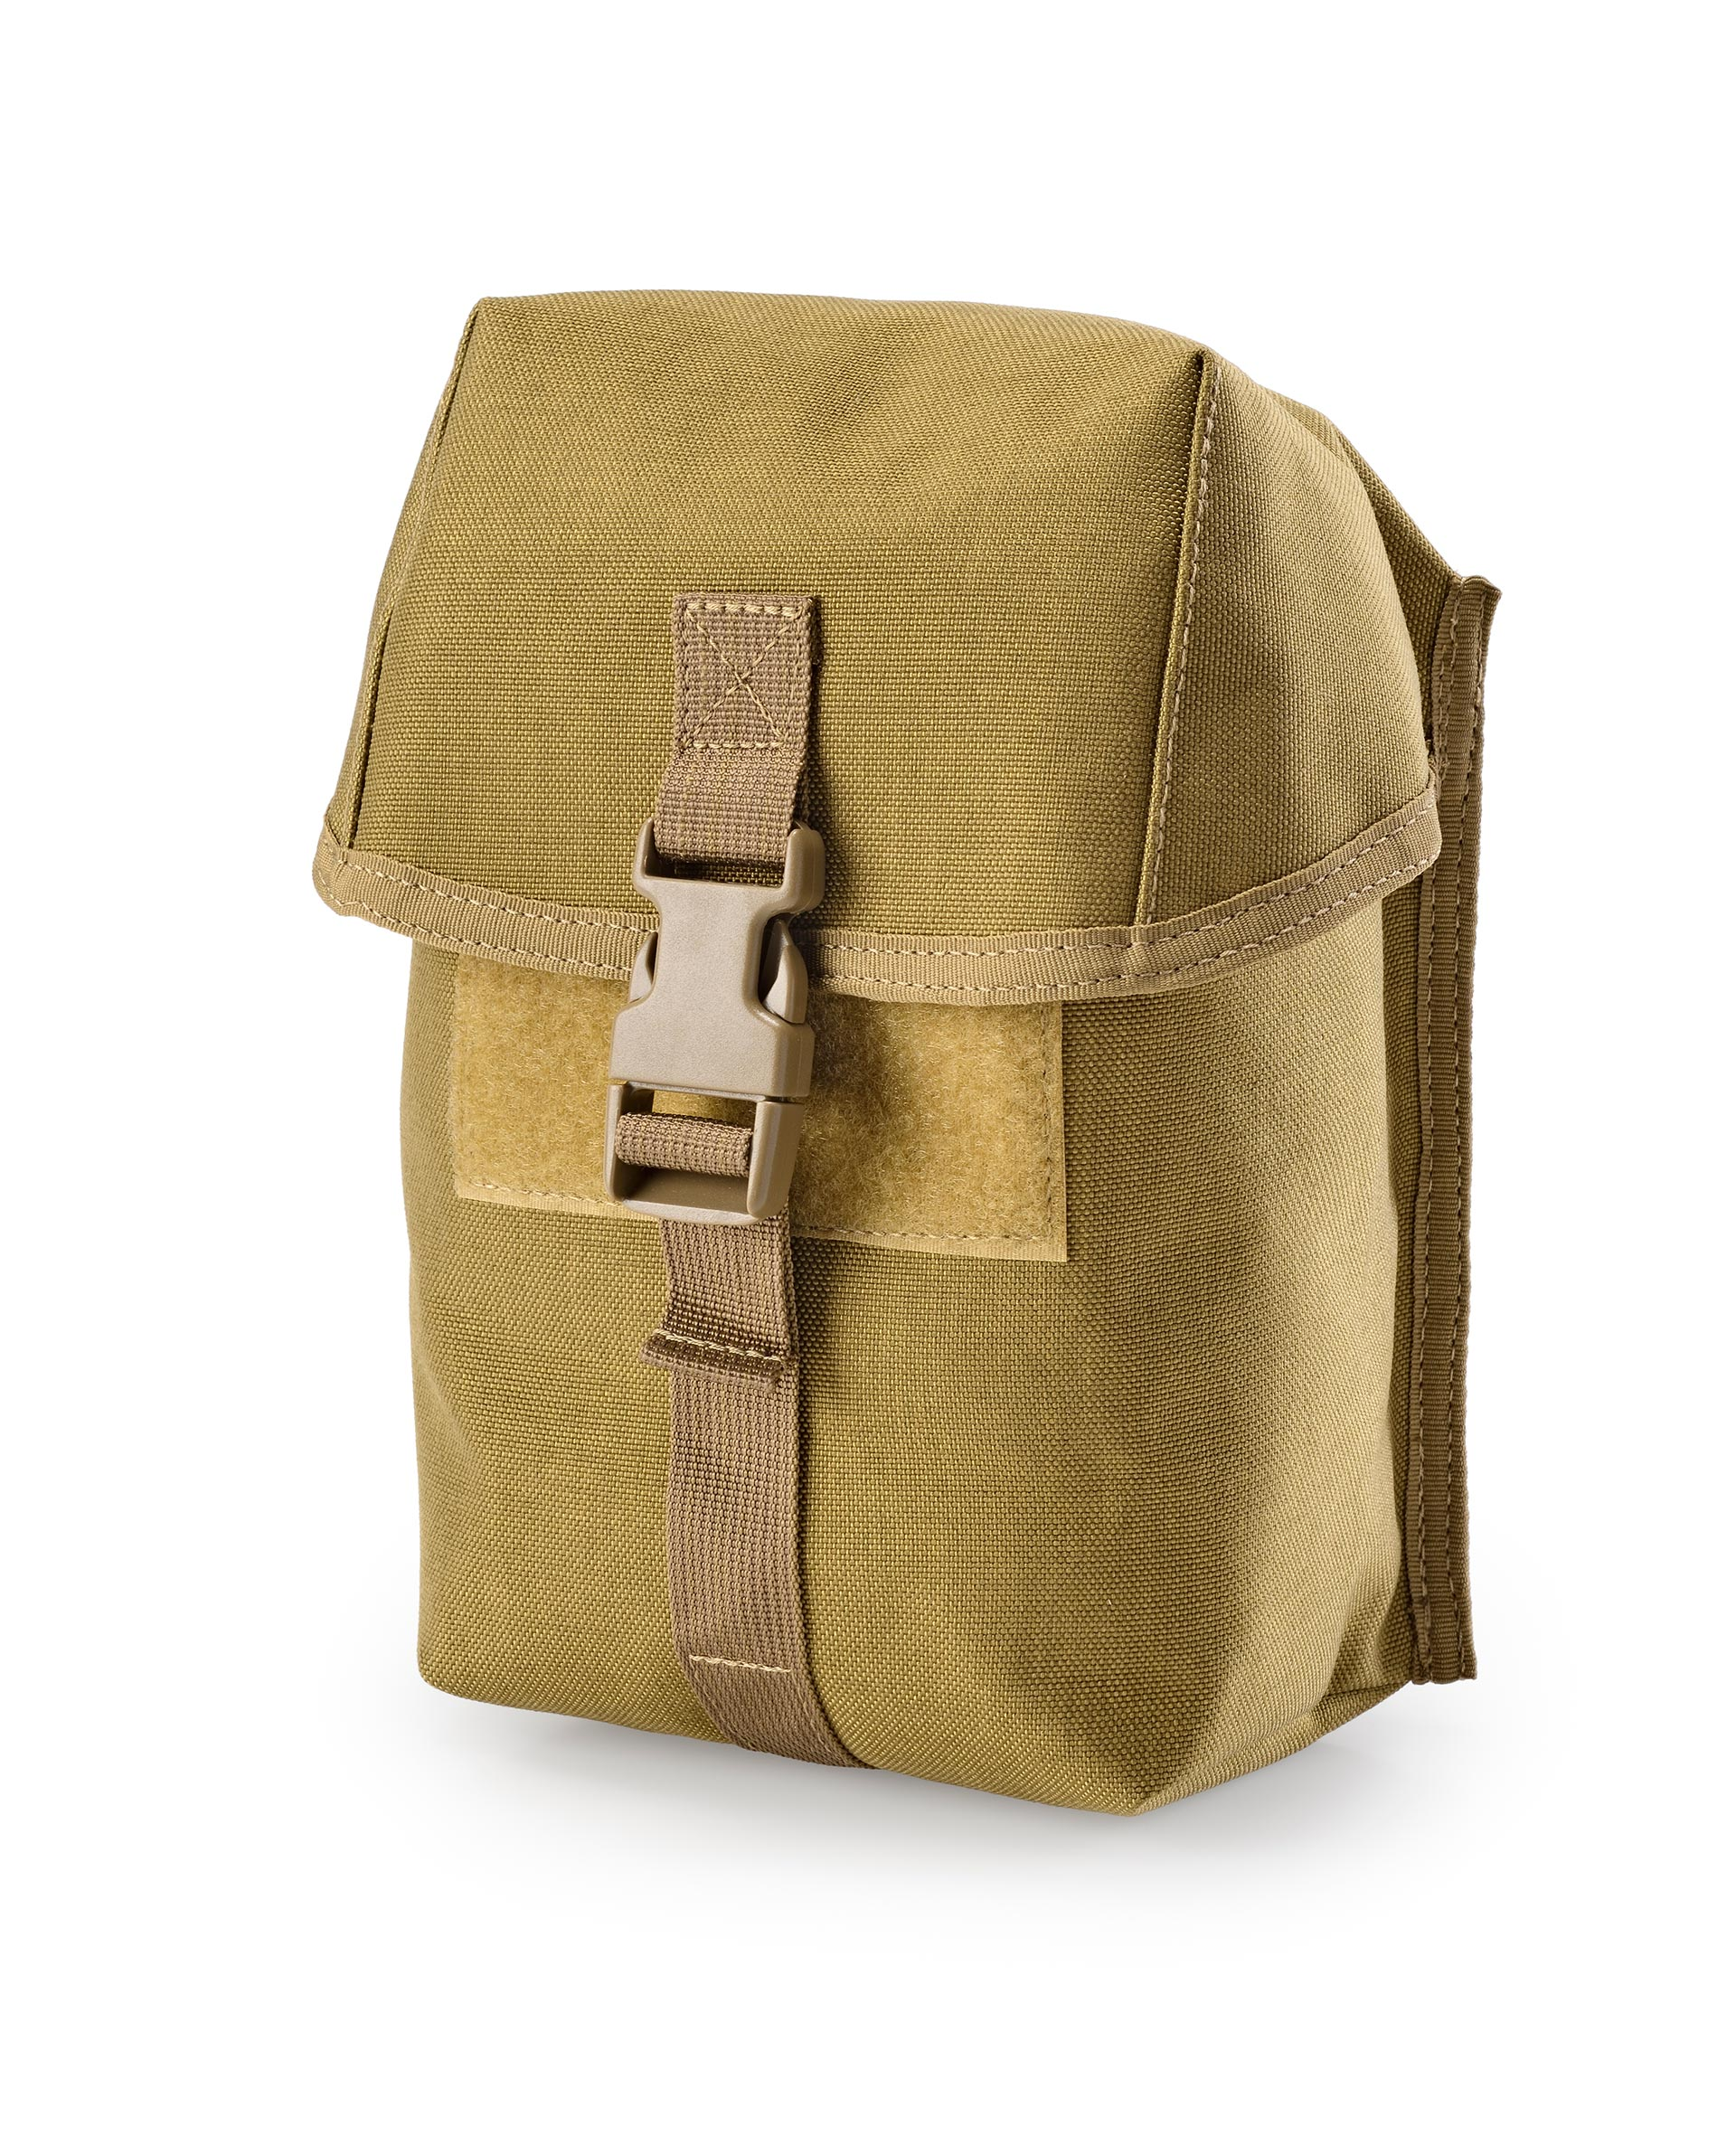 DEFCON 5 MOLLE UP-A UTILITY POUCH